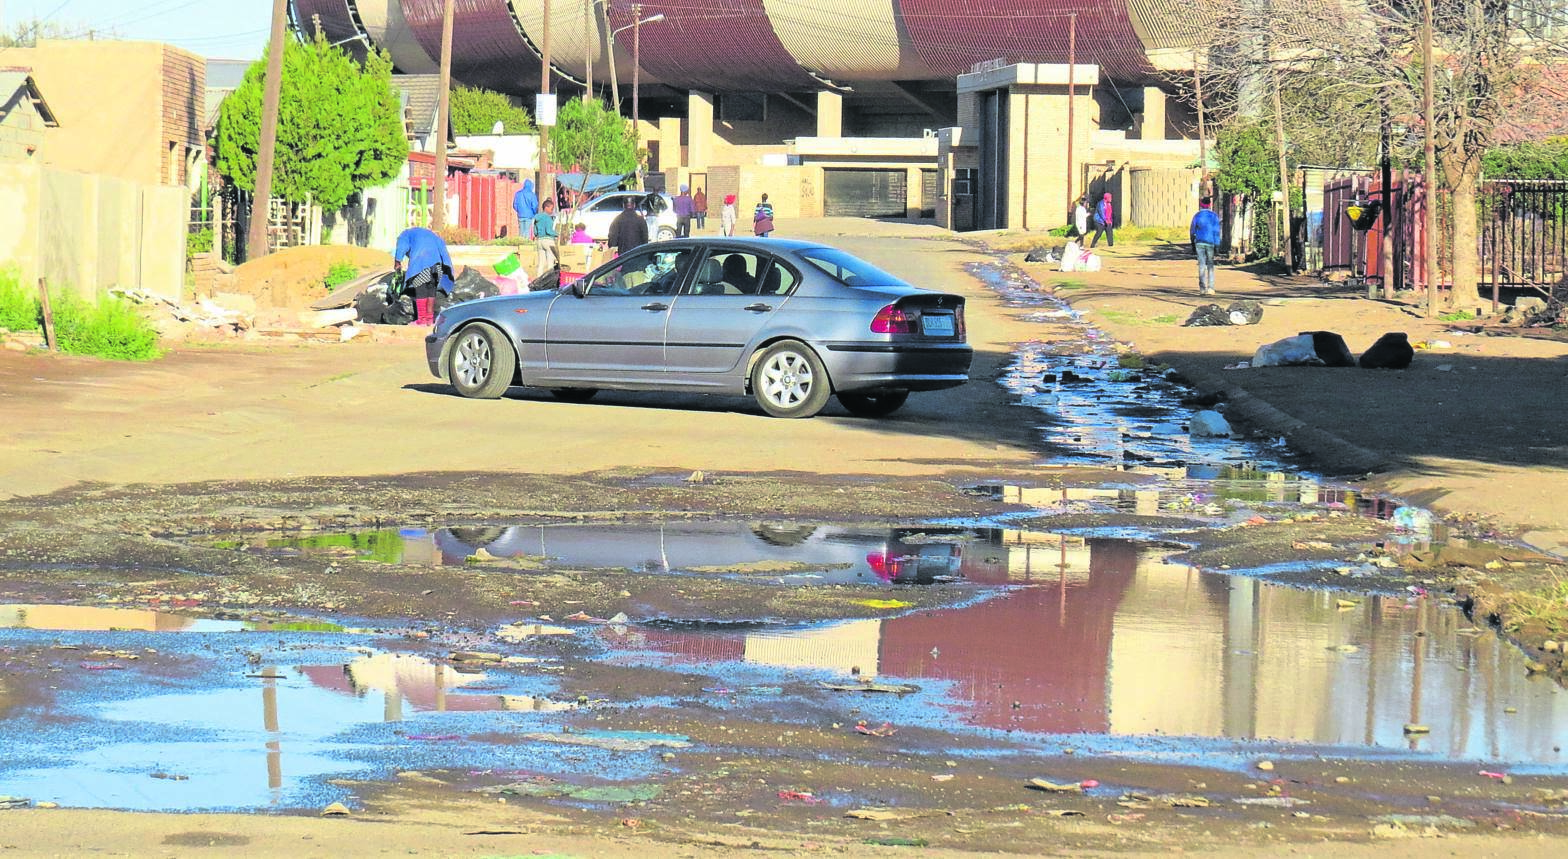 Due to a burst pipe at a recreational swimming pool near the Mangaung Indoor Sports Centre, water is streaming down Thakalekoala Street in Rocklands, Bloemfontein. Photo: Teboho Setena